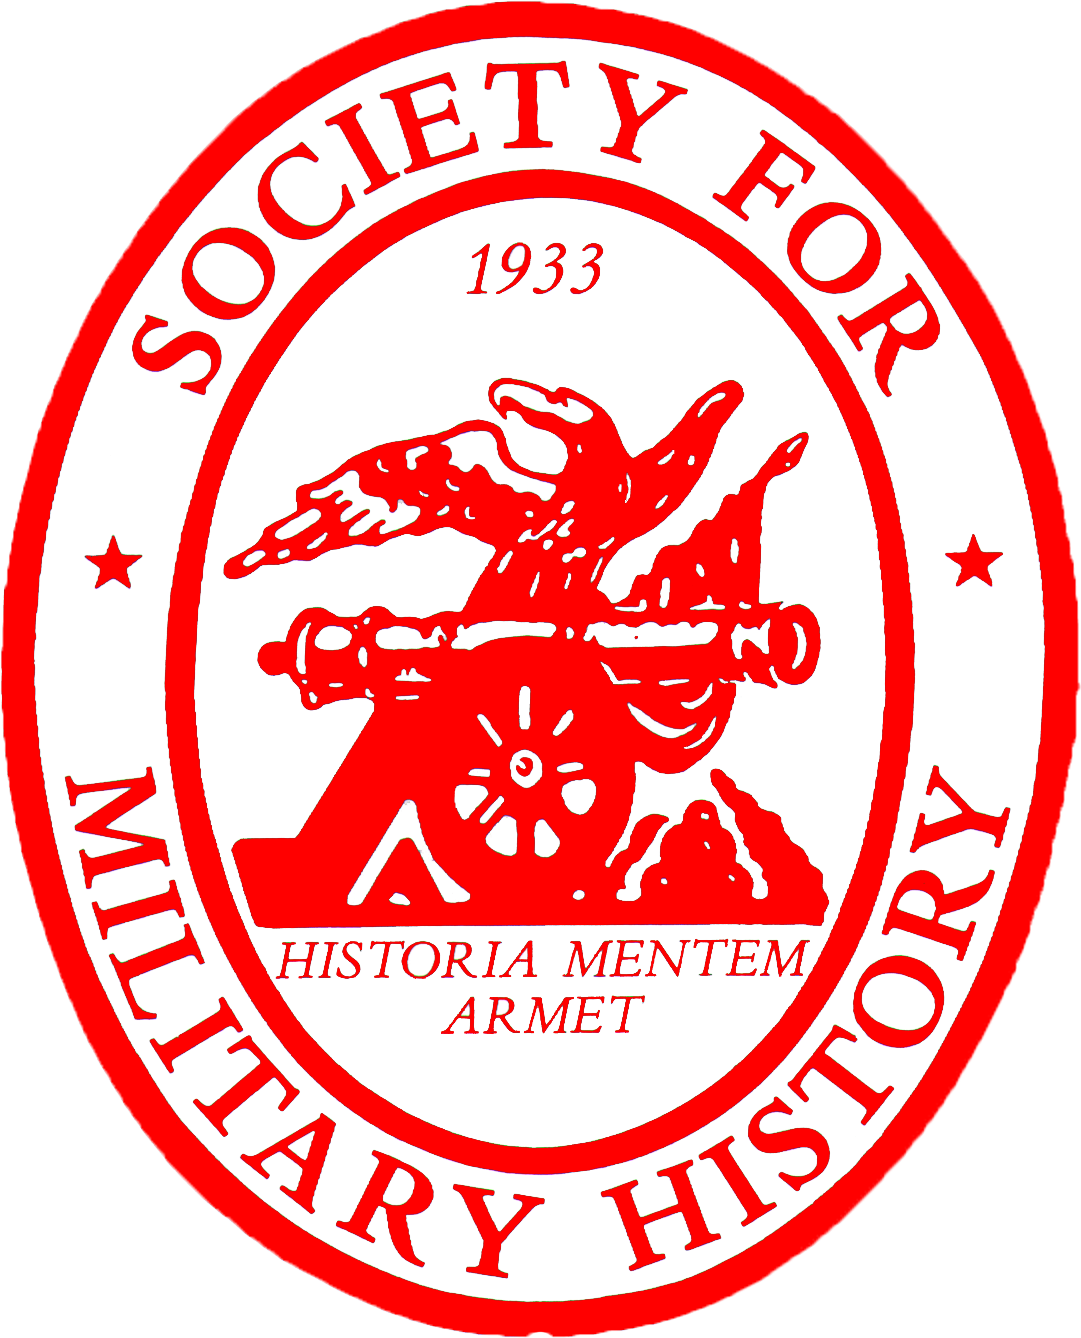 Society for Military History logo